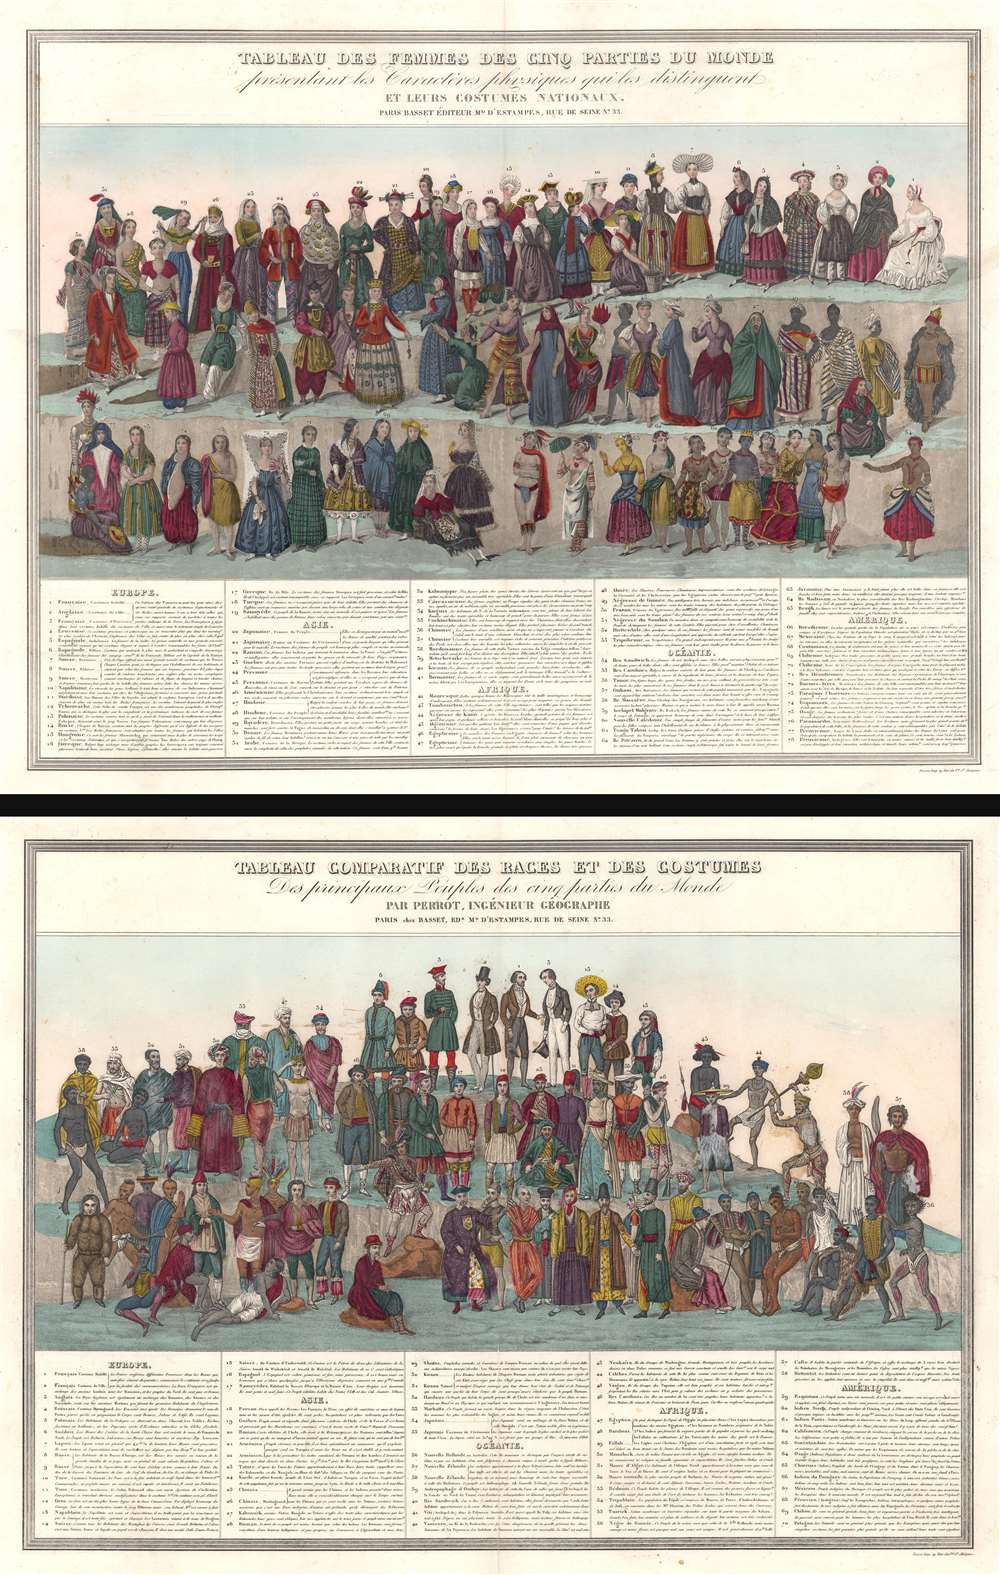 1830 Perrot Comparative Charts of the World's Men and Women